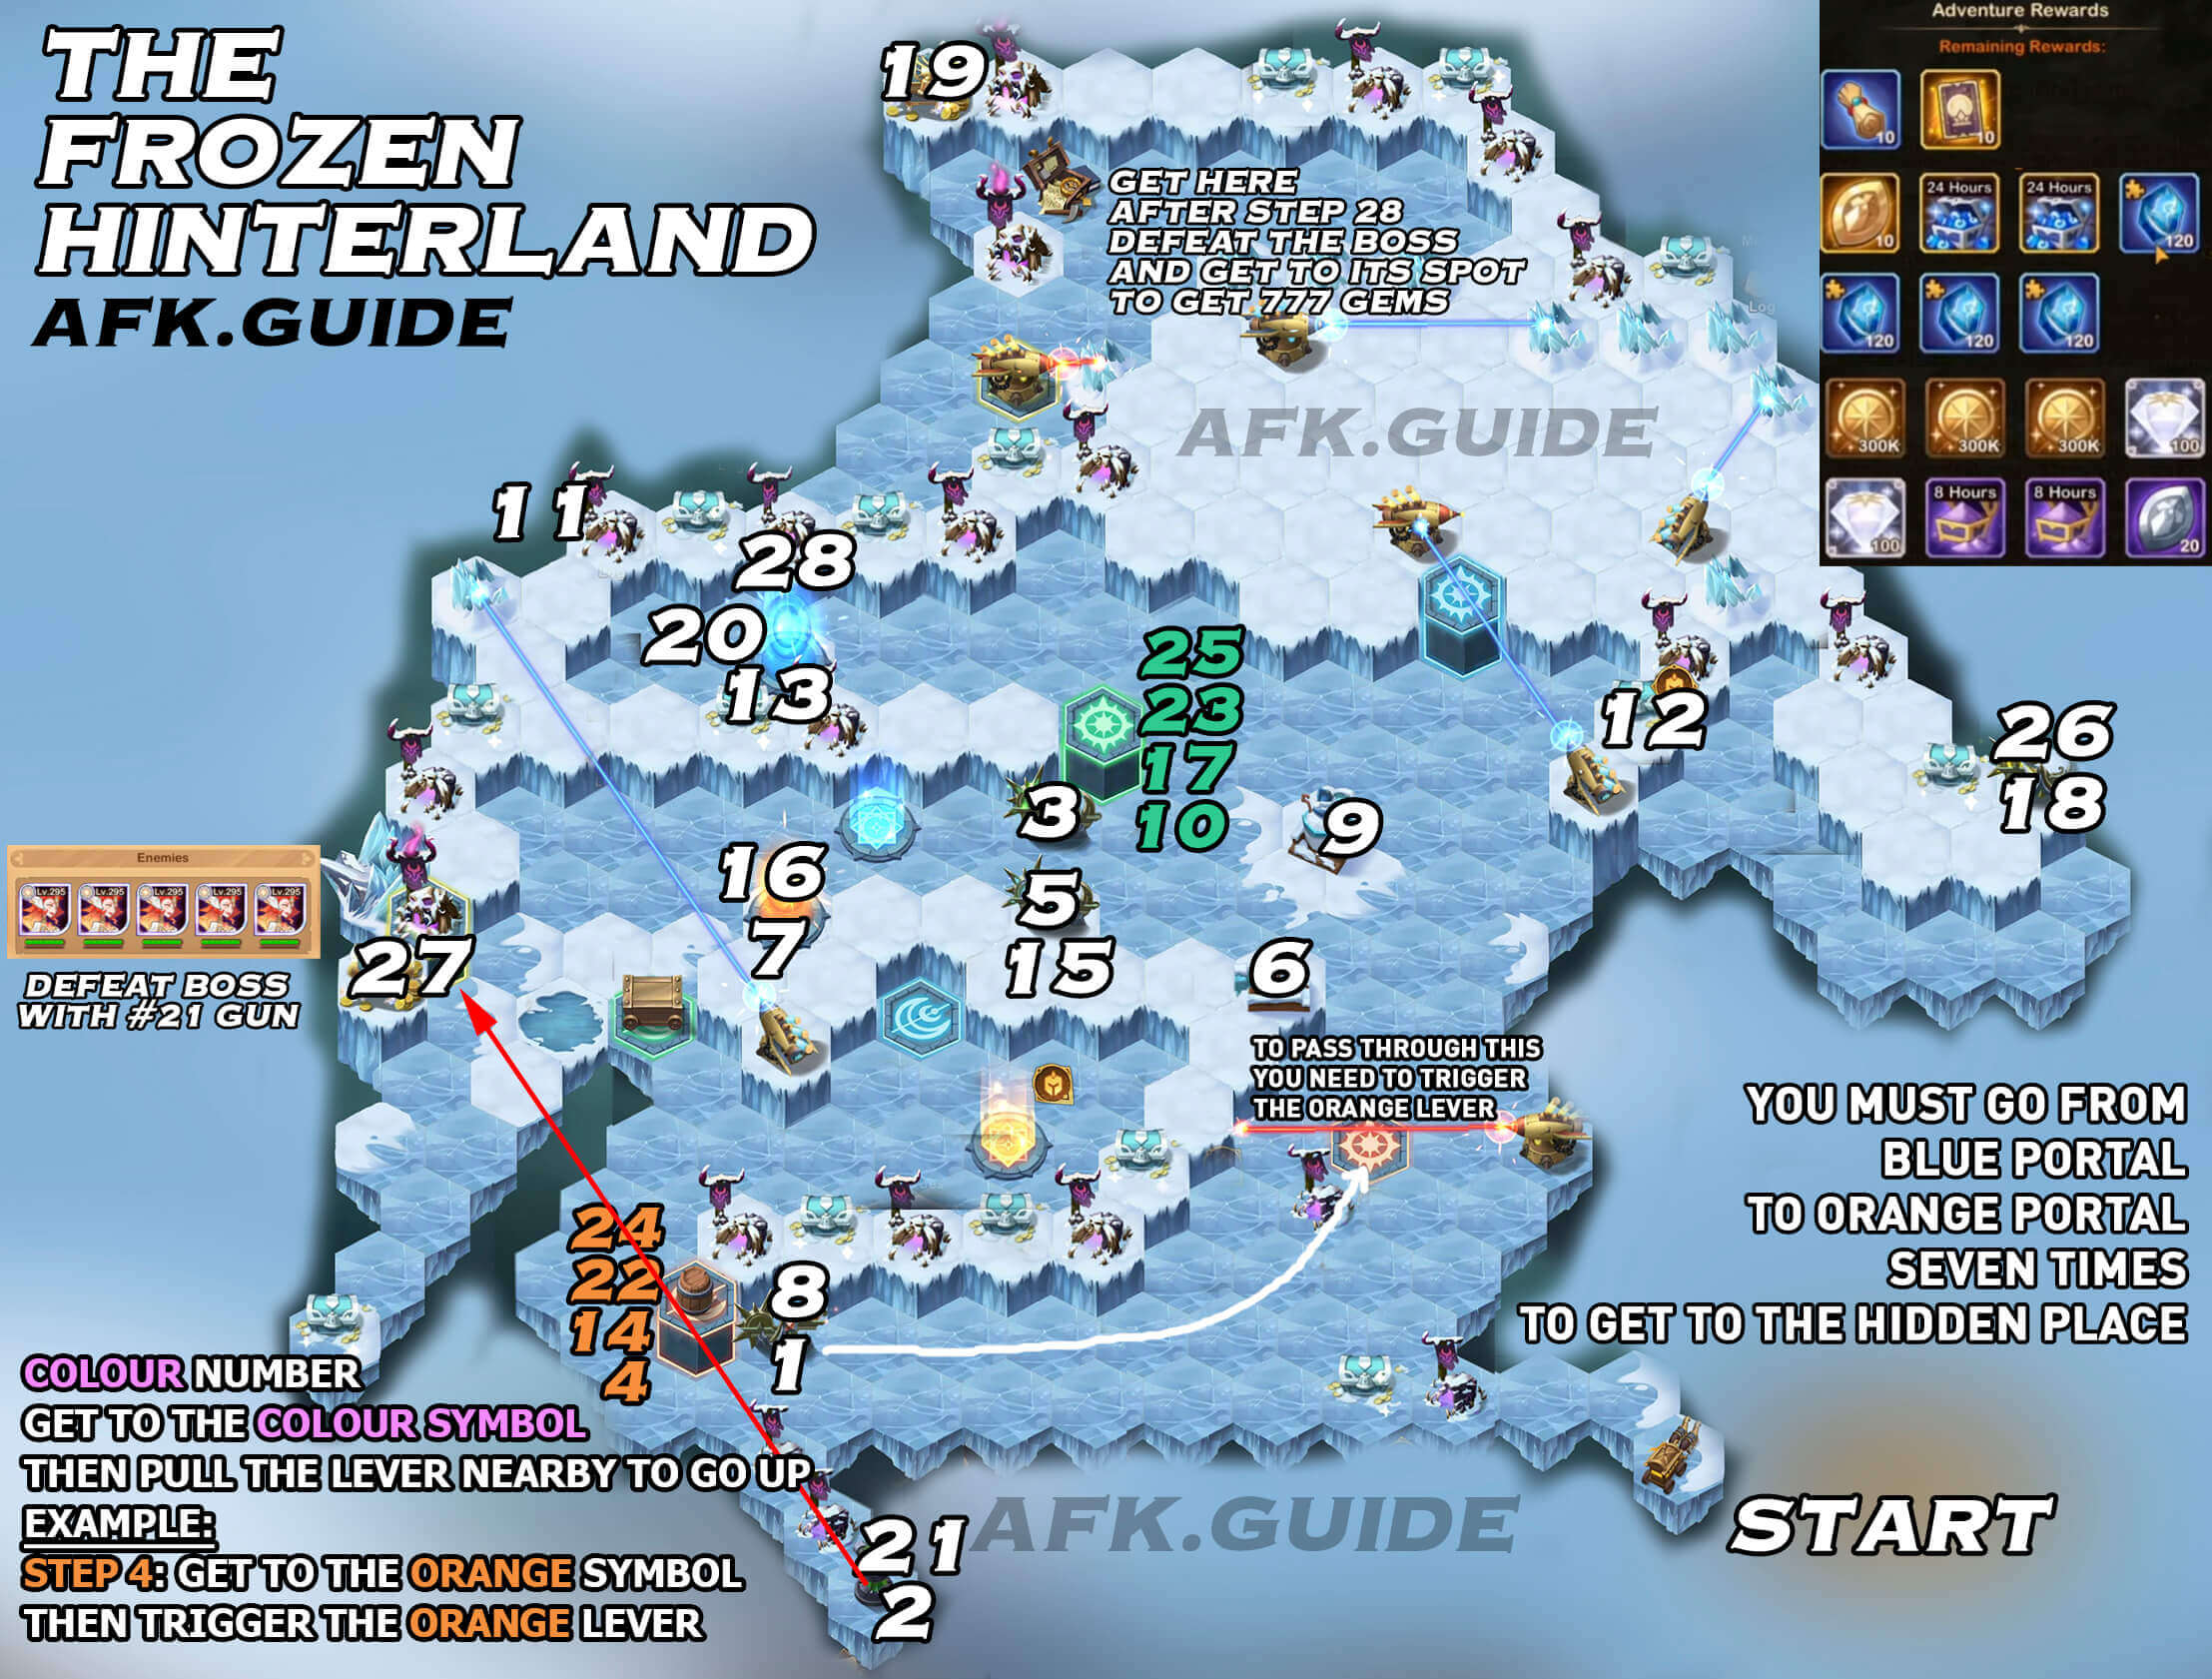 Voyage of Wonders Guide & Map: The Frozen Hinterland